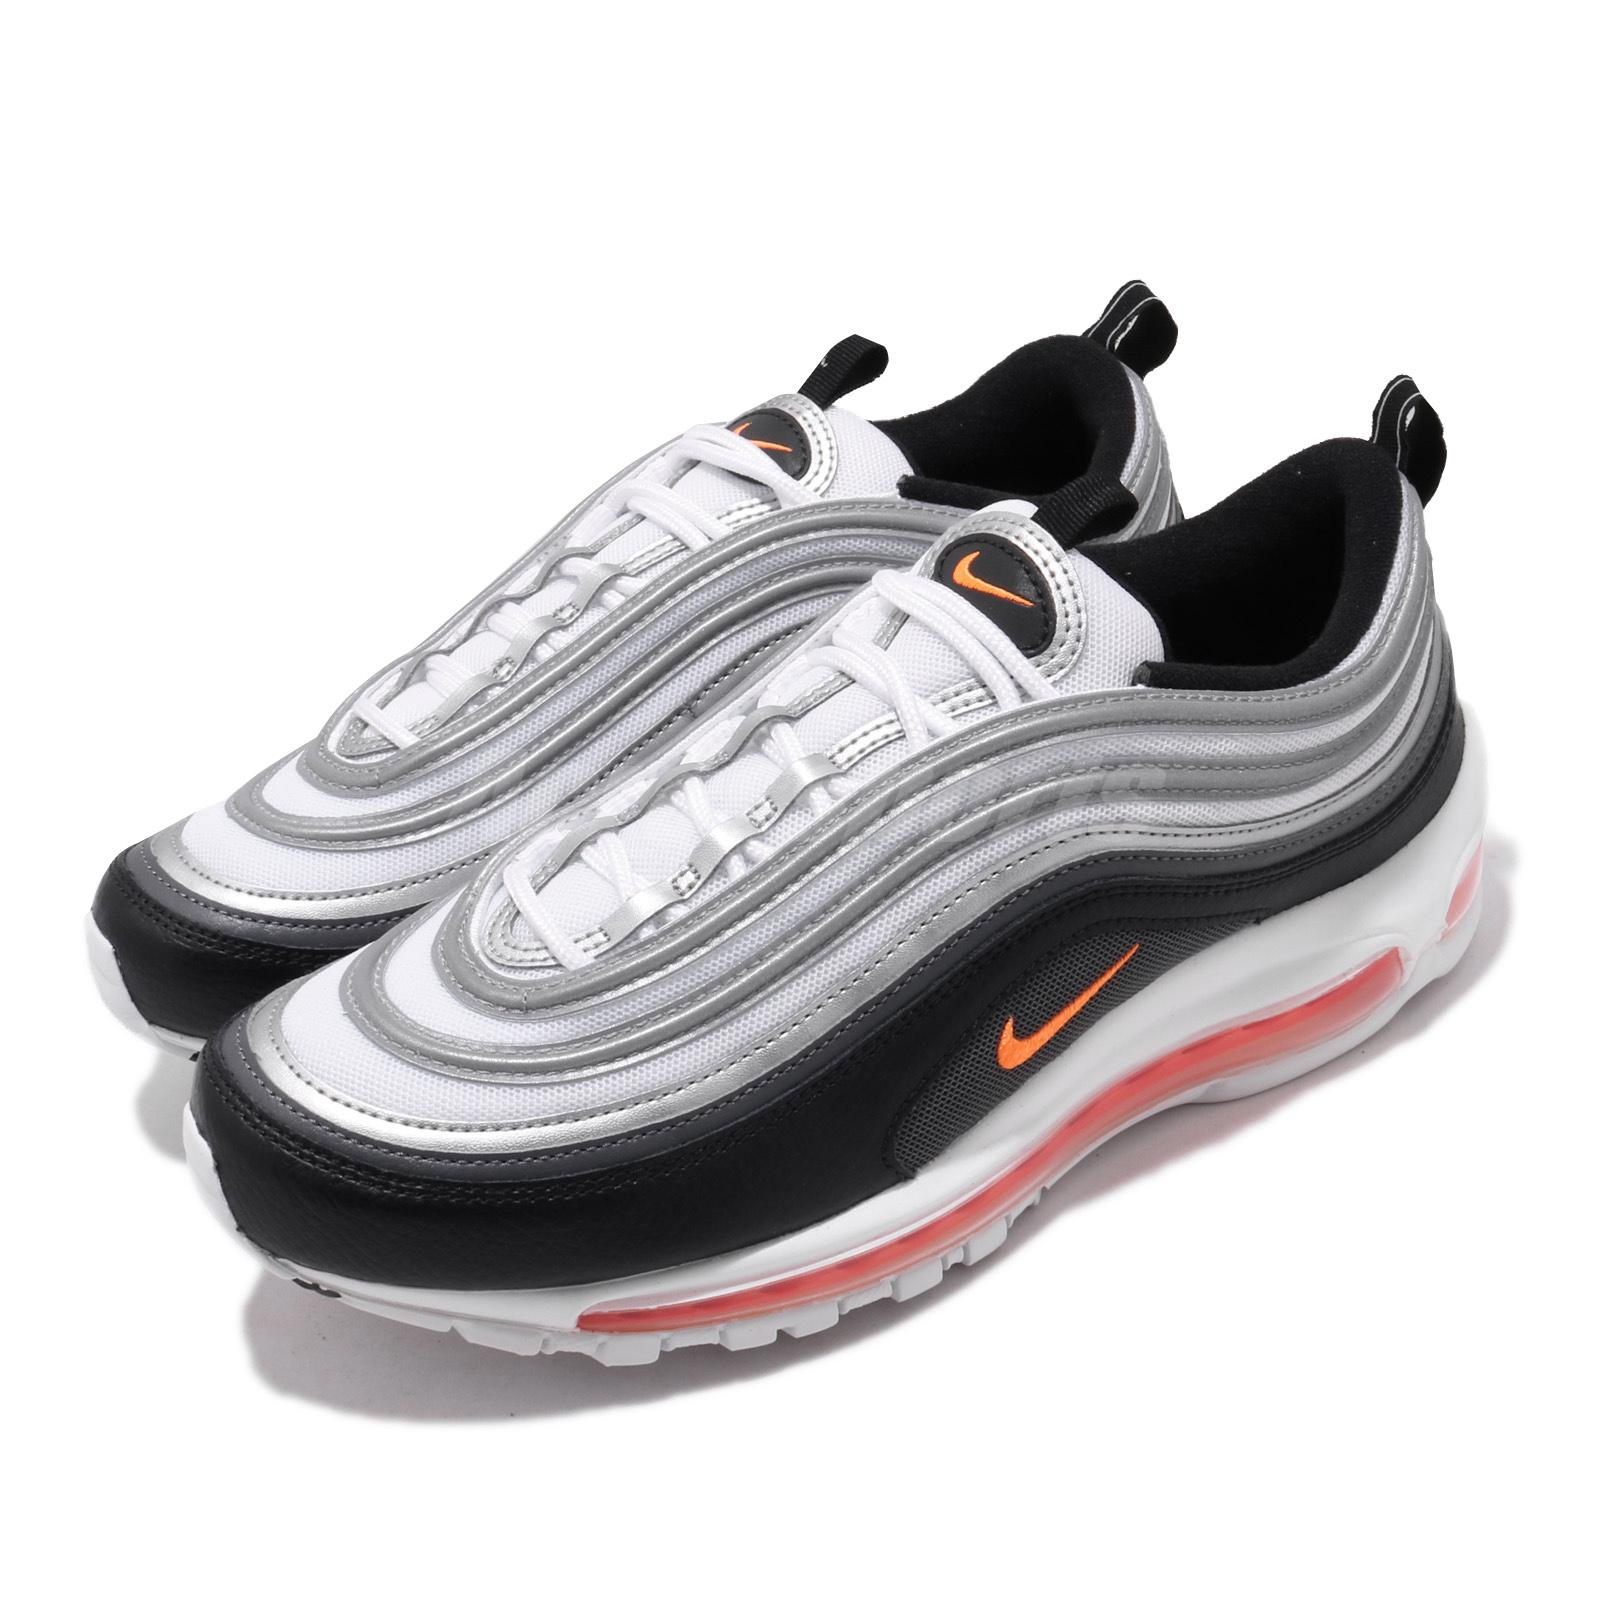 Nike Air Max 97 White Black Orange Grey Silver Men Lifestyle Shoes